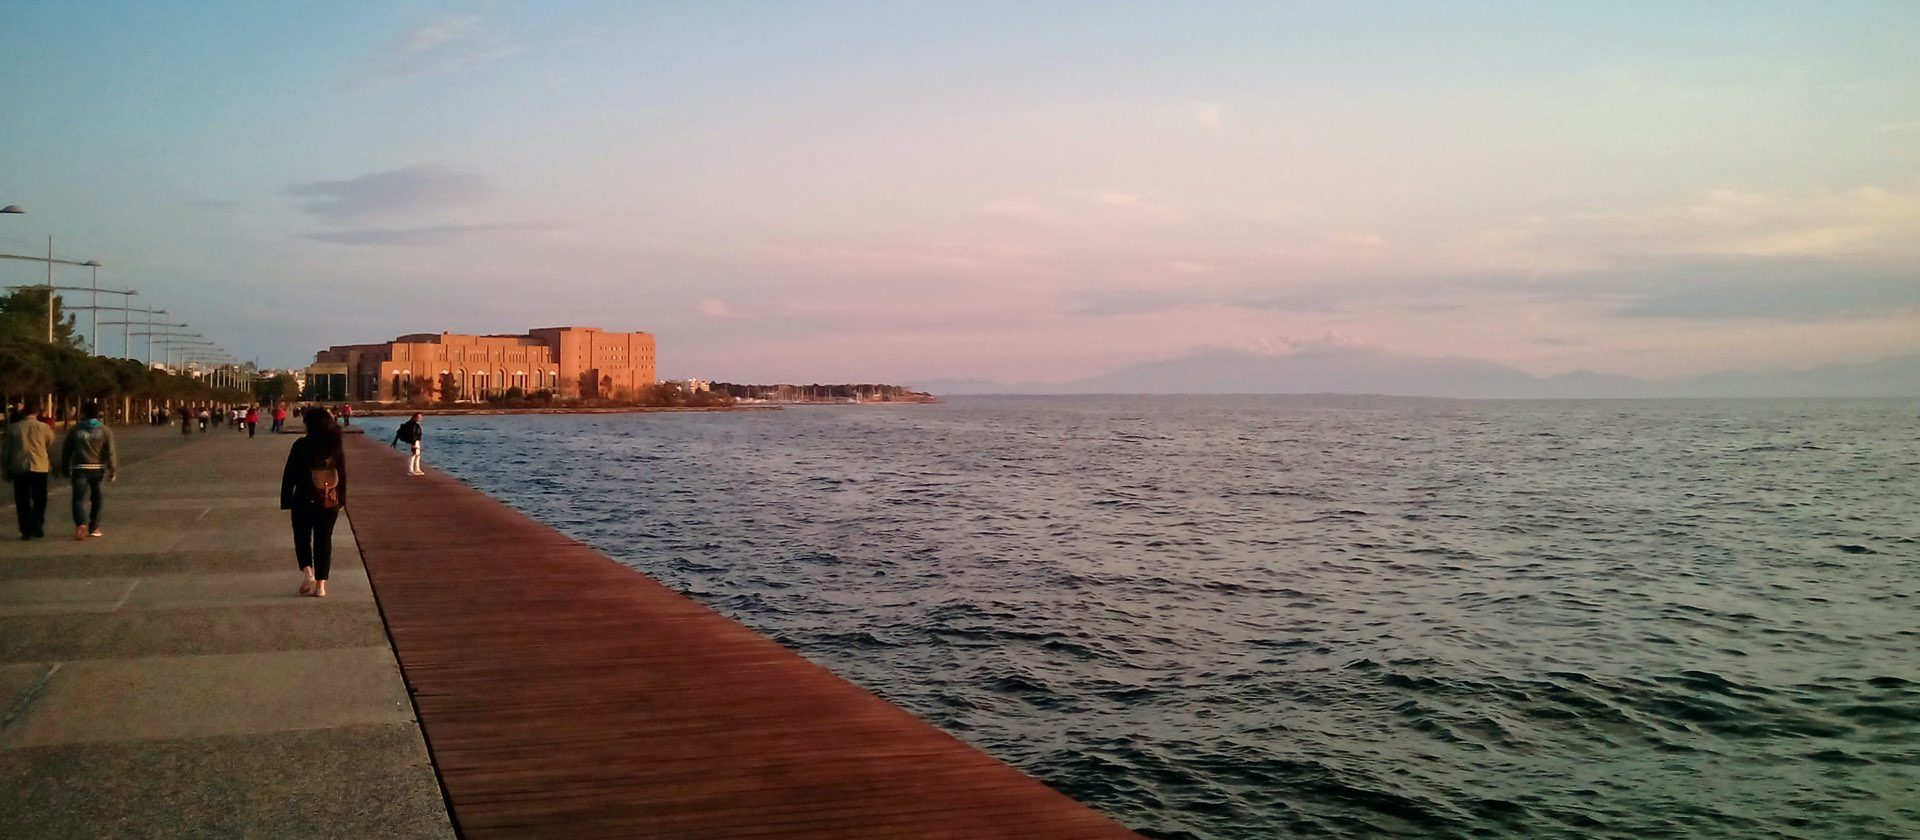 The sea of Thessaloniki with the Concert Hall in the background